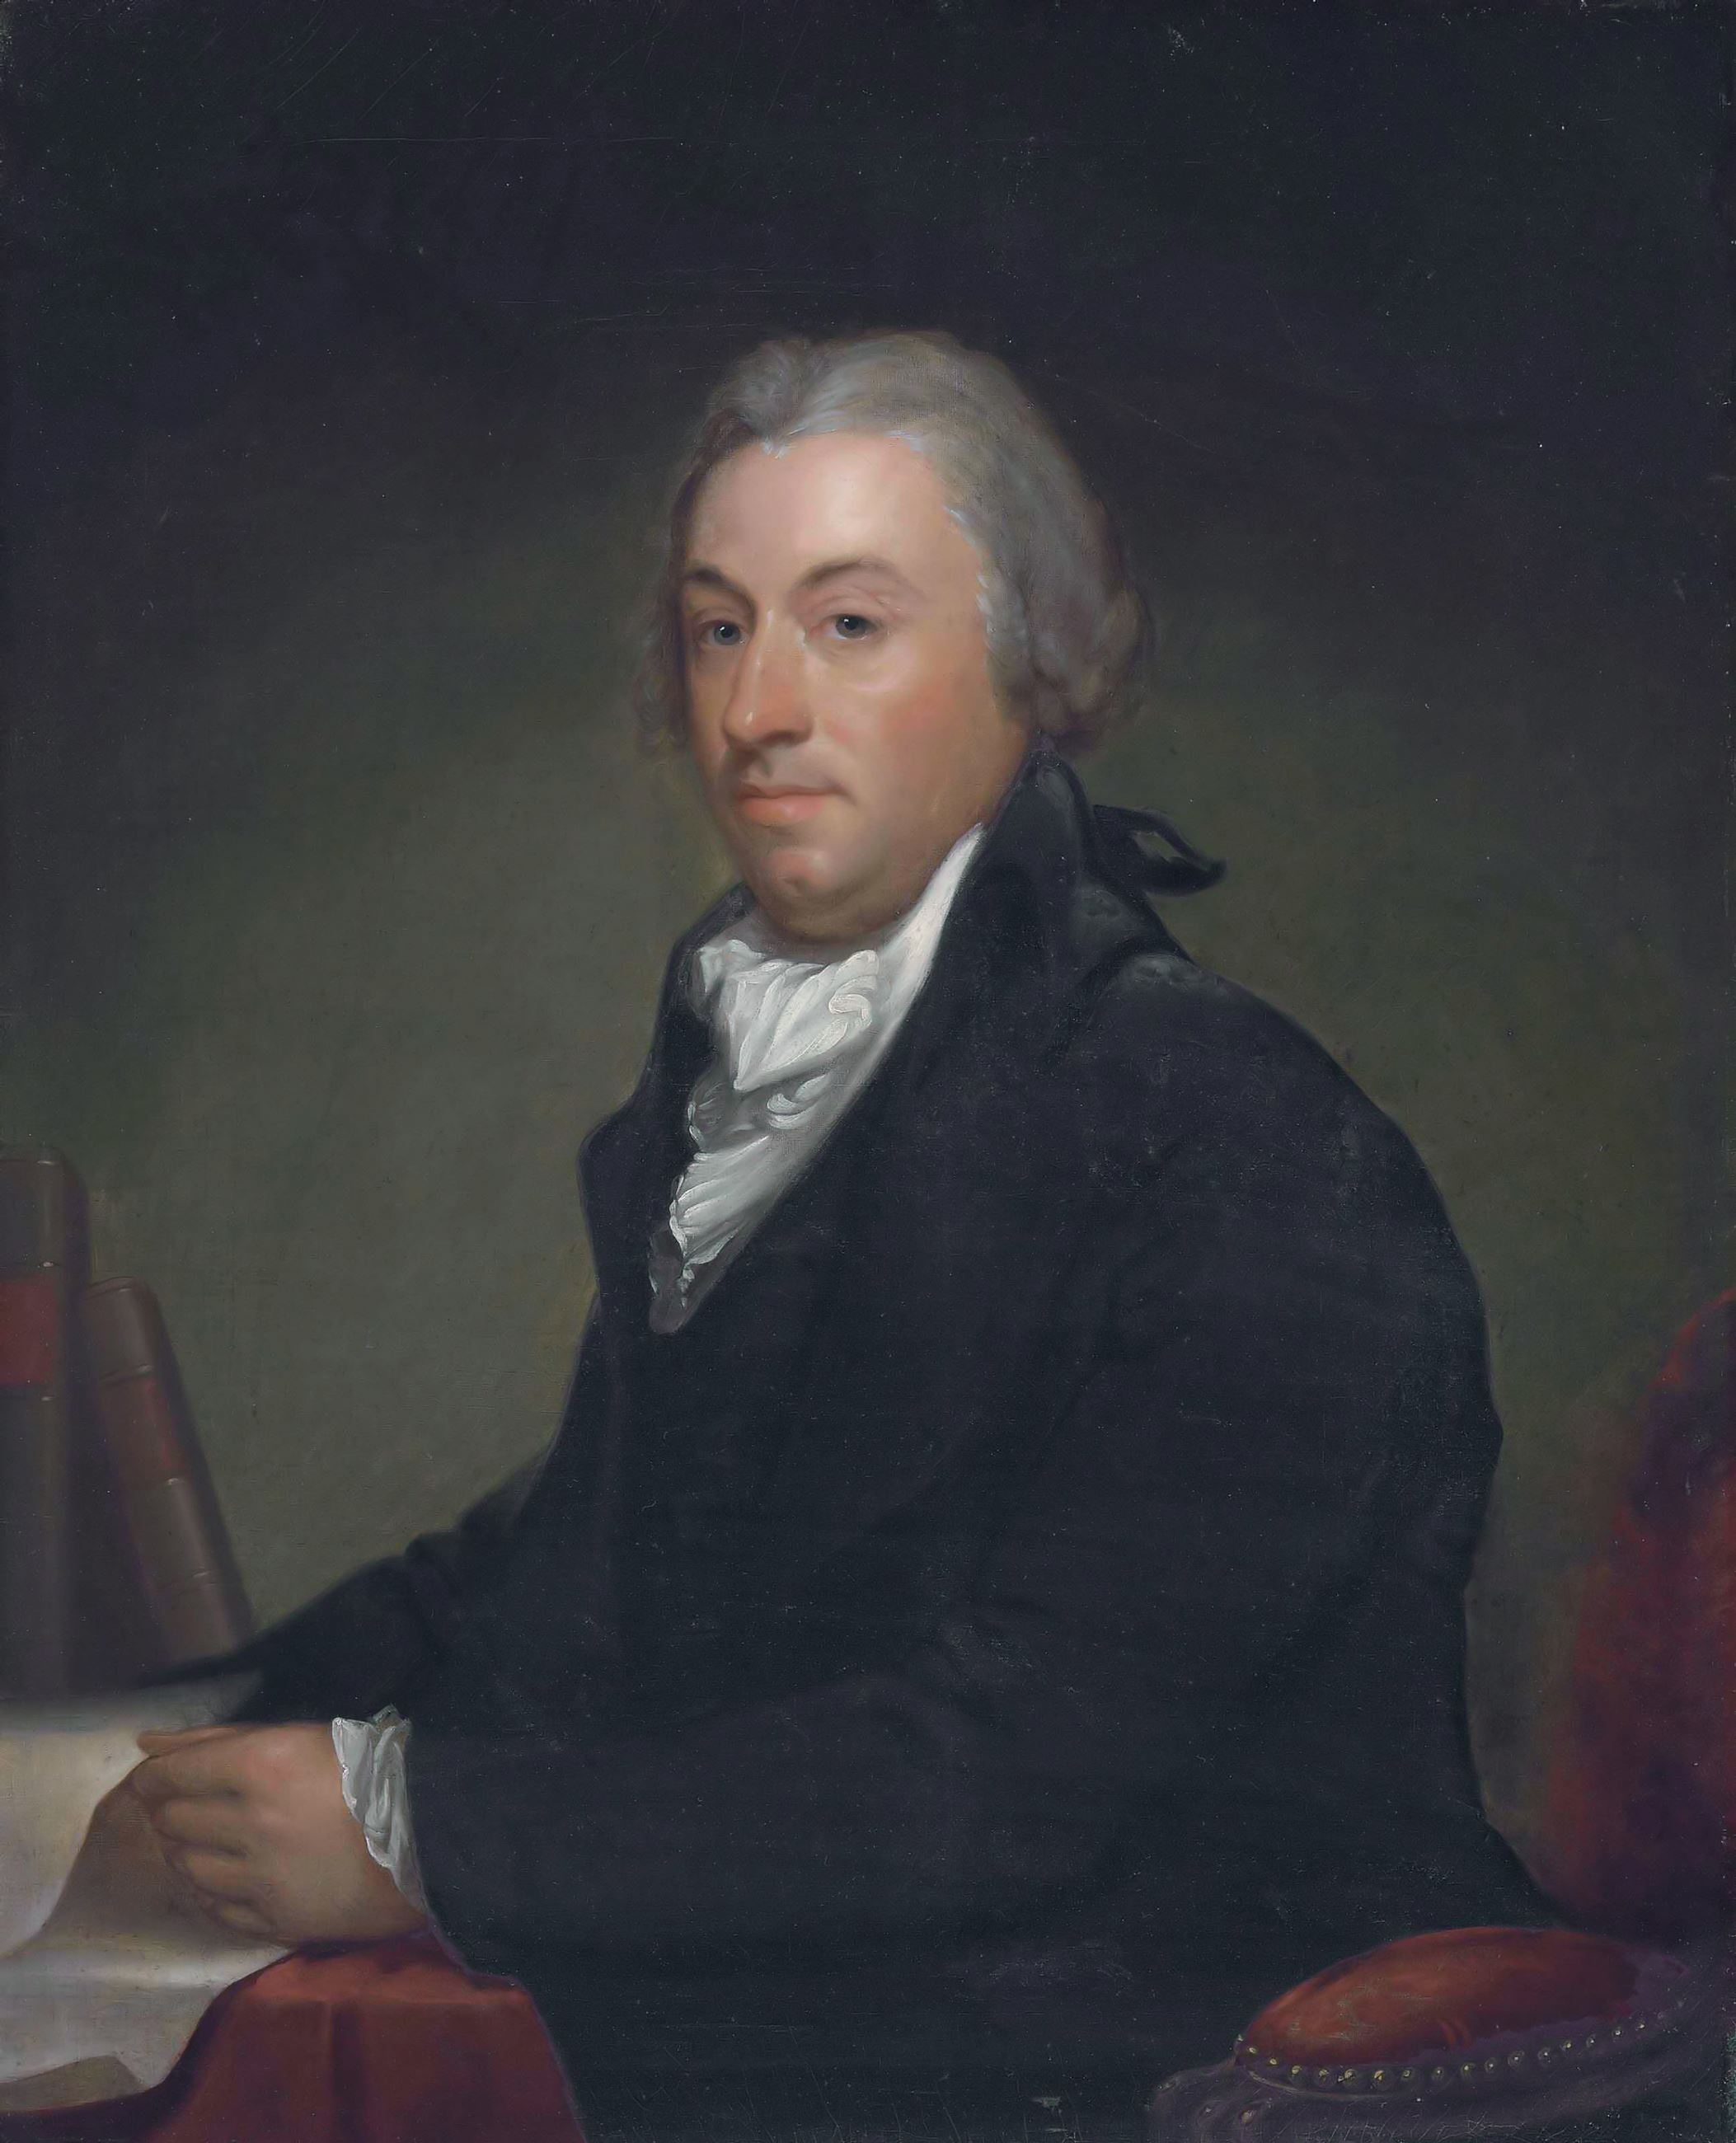 Robert_R_Livingston,_attributed_to_Gilbert_Stuart_(1755-1828)